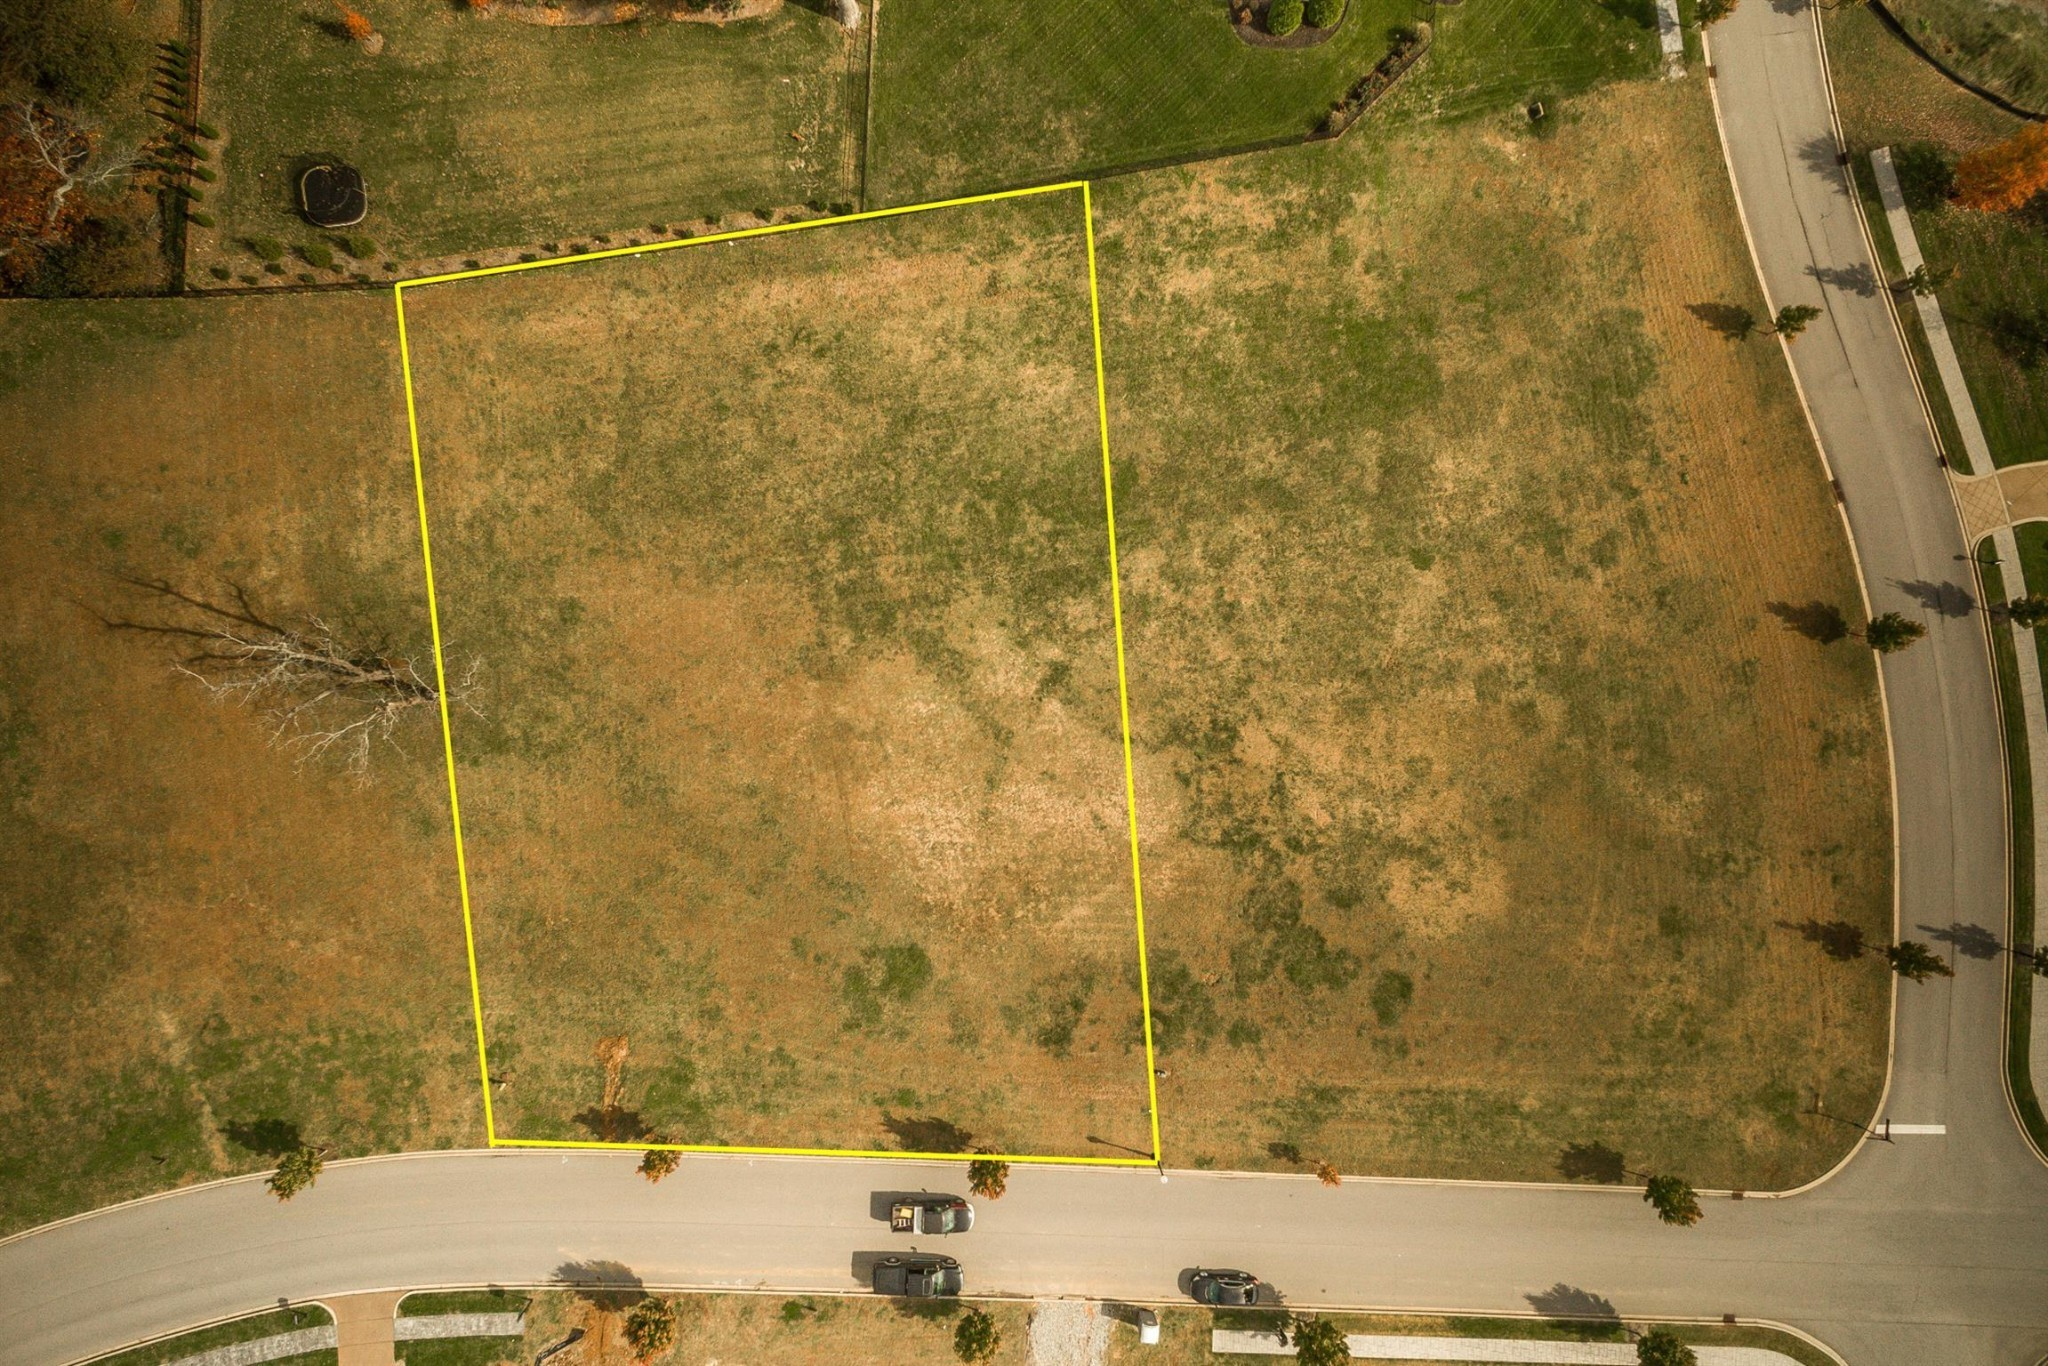 One of the largest building lots available in luxurious Fairvue Plantation. This gorgeous .79 acre lot is ready for you to build the home of your dreams in one of the most sought after and prestigious lakefront and golf club communities in all of Sumner County. Golf Course, swim, fitness and dinning available with optional club membership.